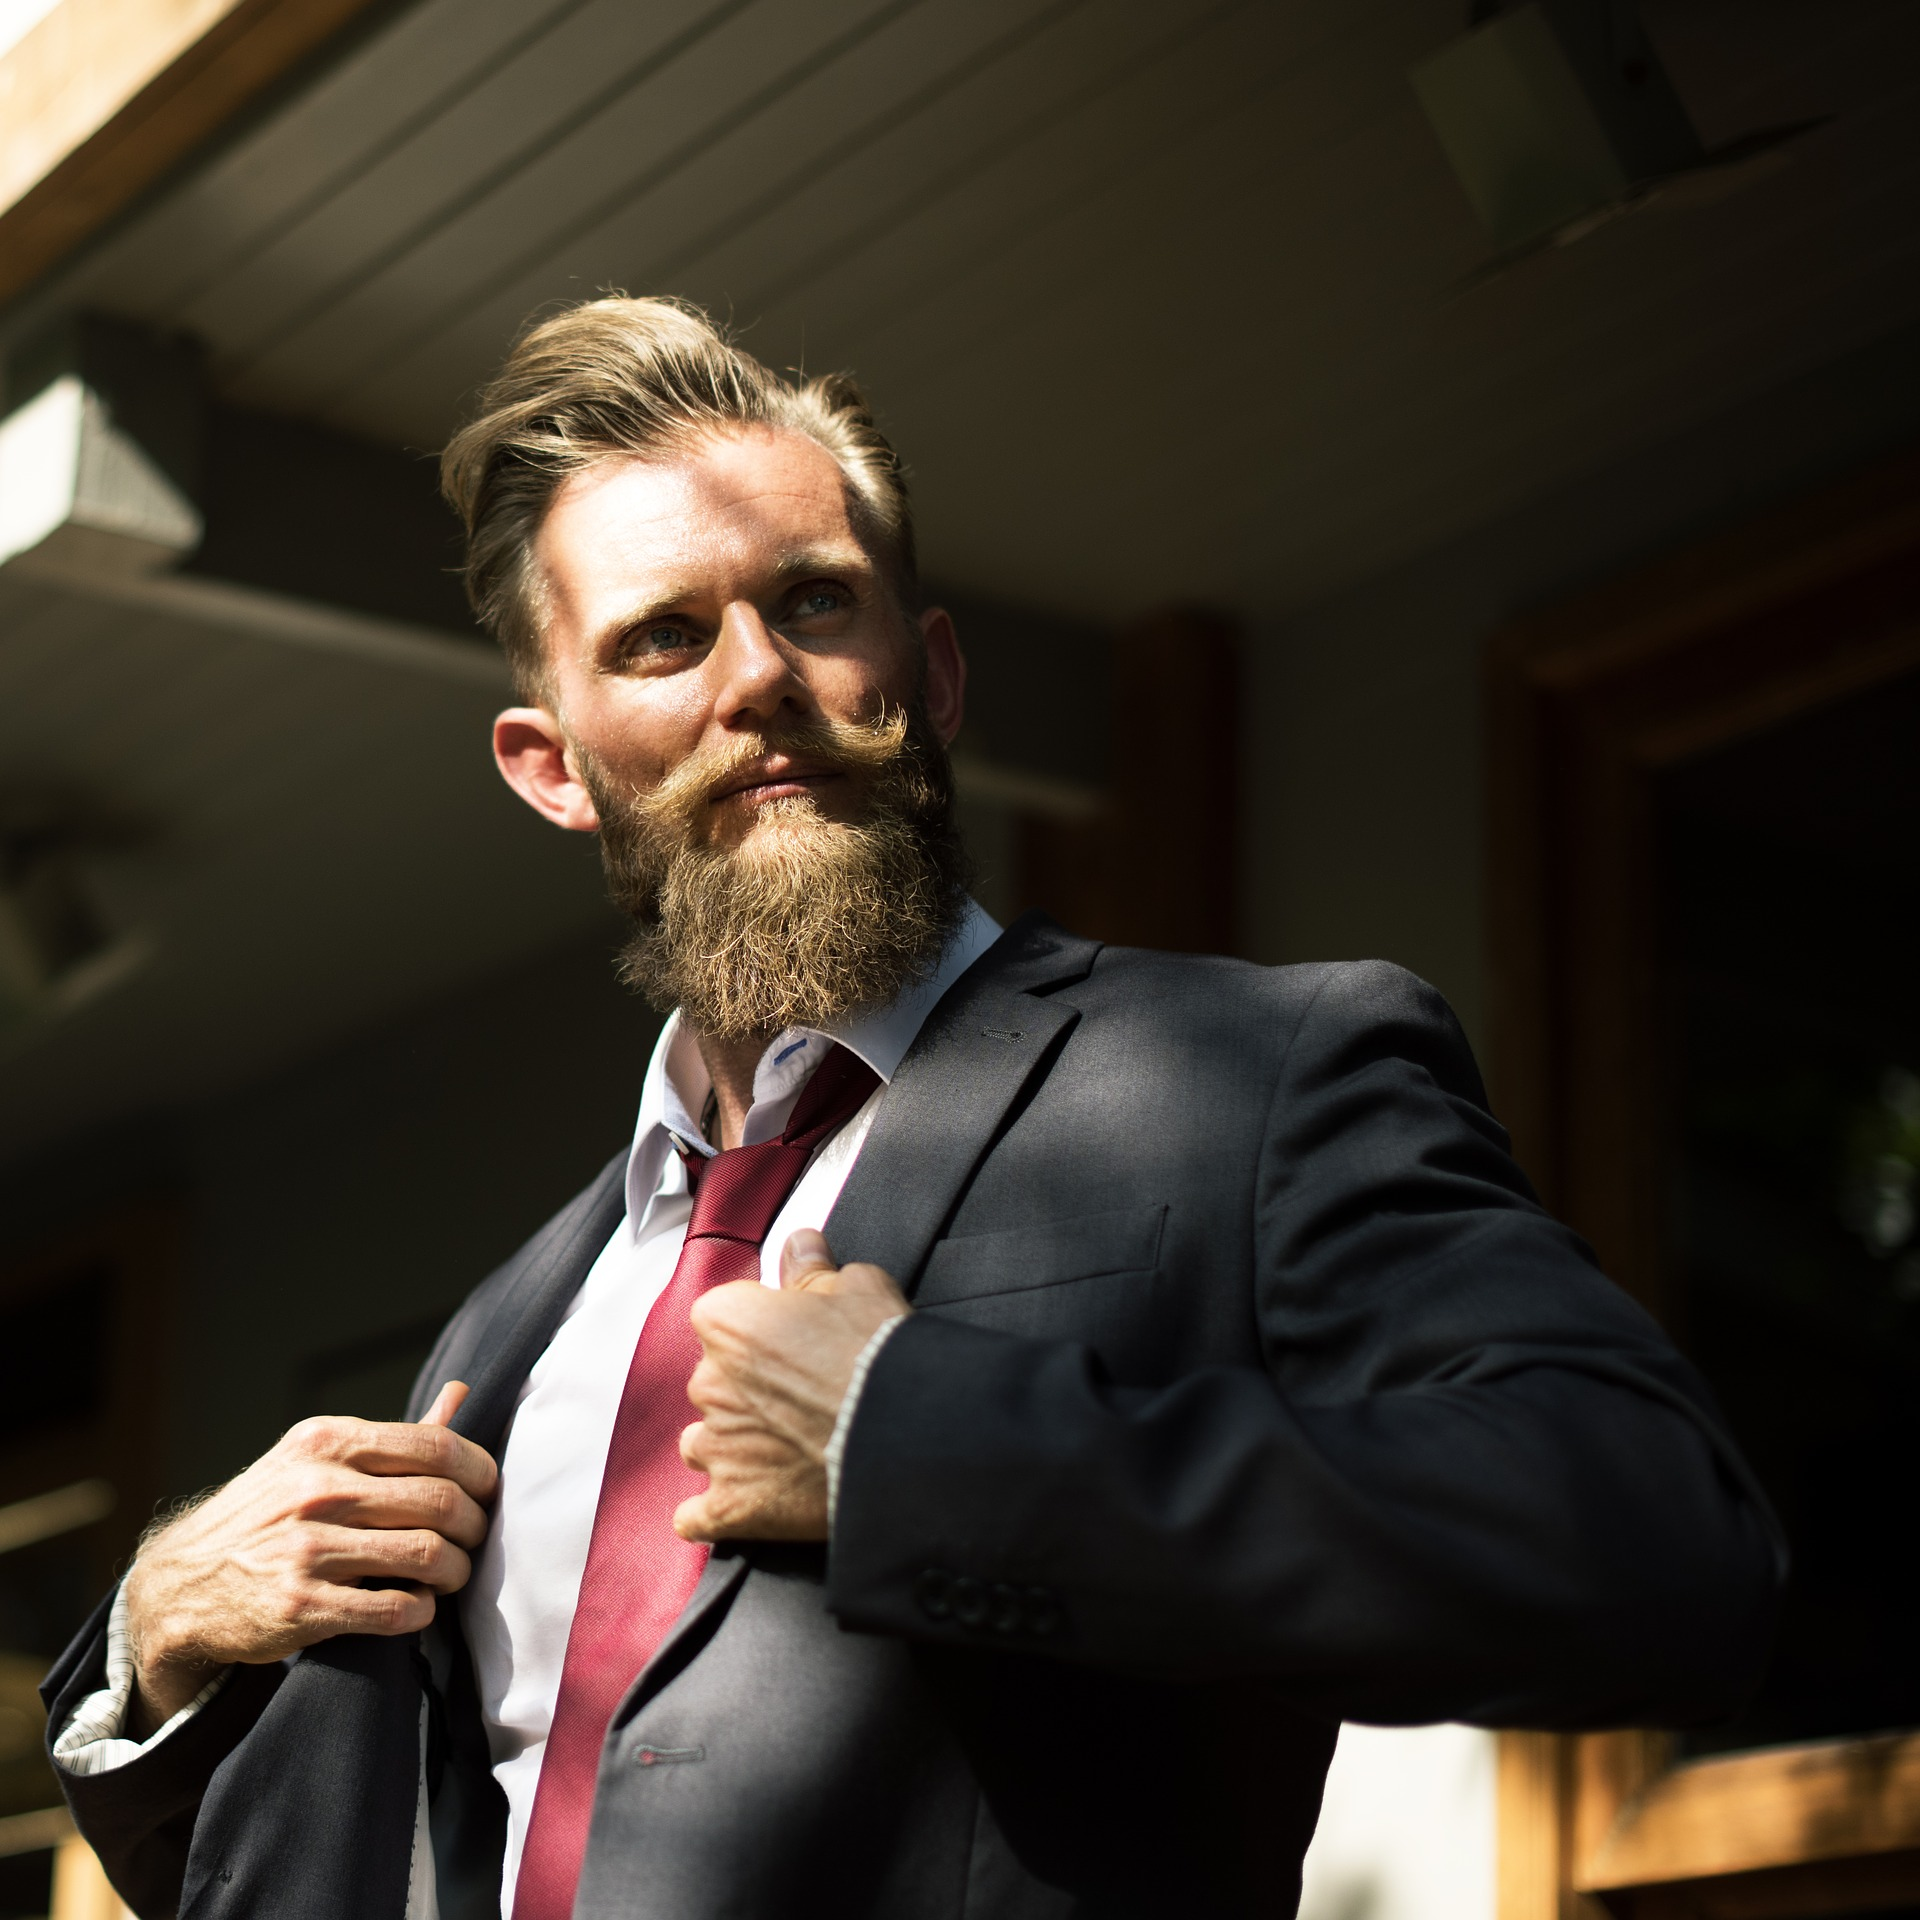 Beard Oil Vs Balm: Which One To Choose?